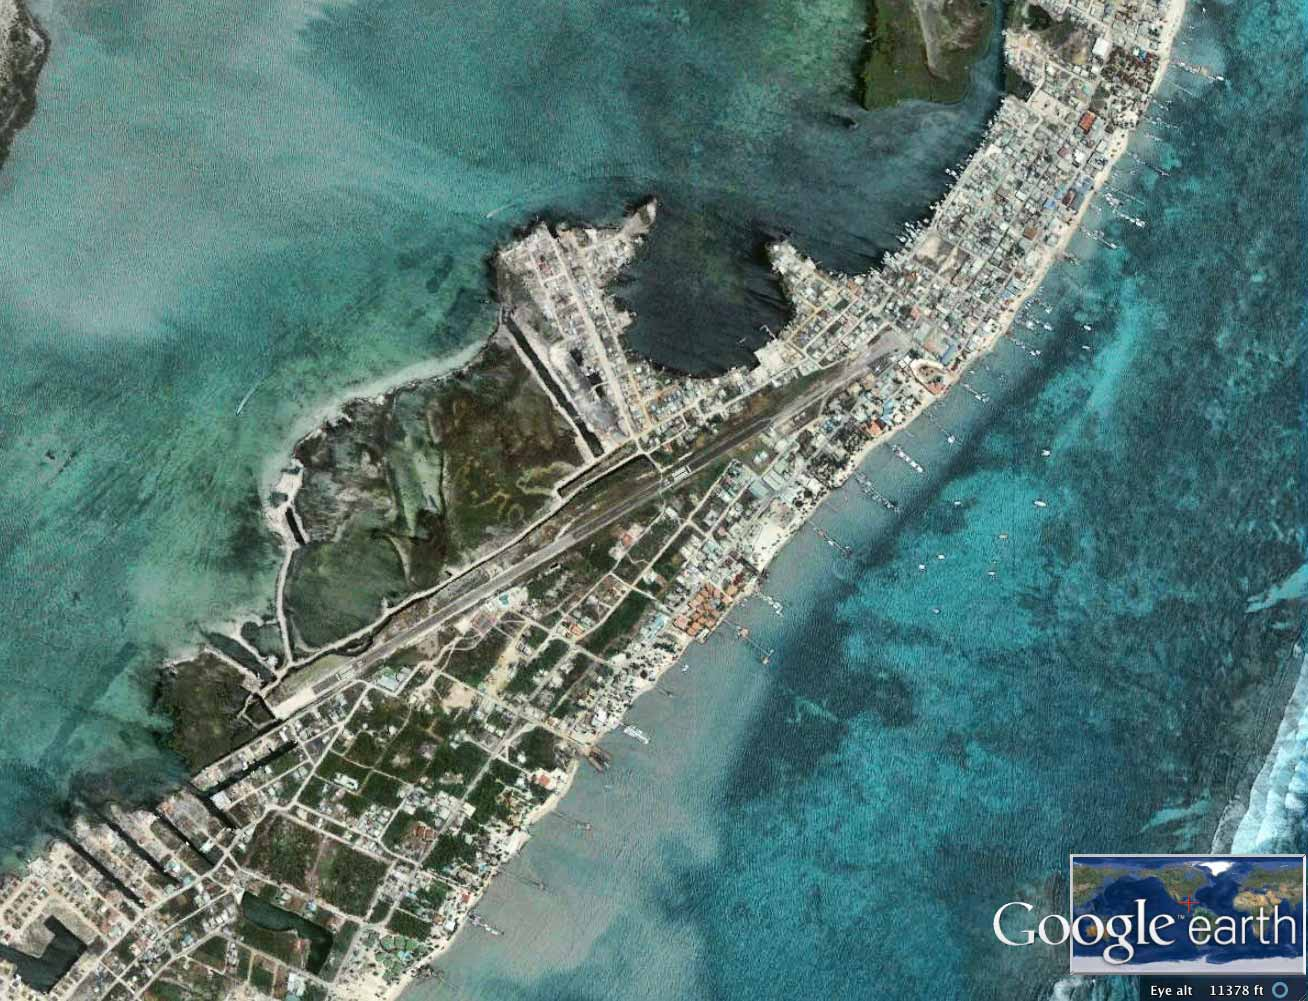 FLIGHT FROM BELIZE CITY TO AMBERGRIS CAYE BY AIR & RETURN FLIGHT FROM AMBERGRIS CAYE TO BELIZE CITY